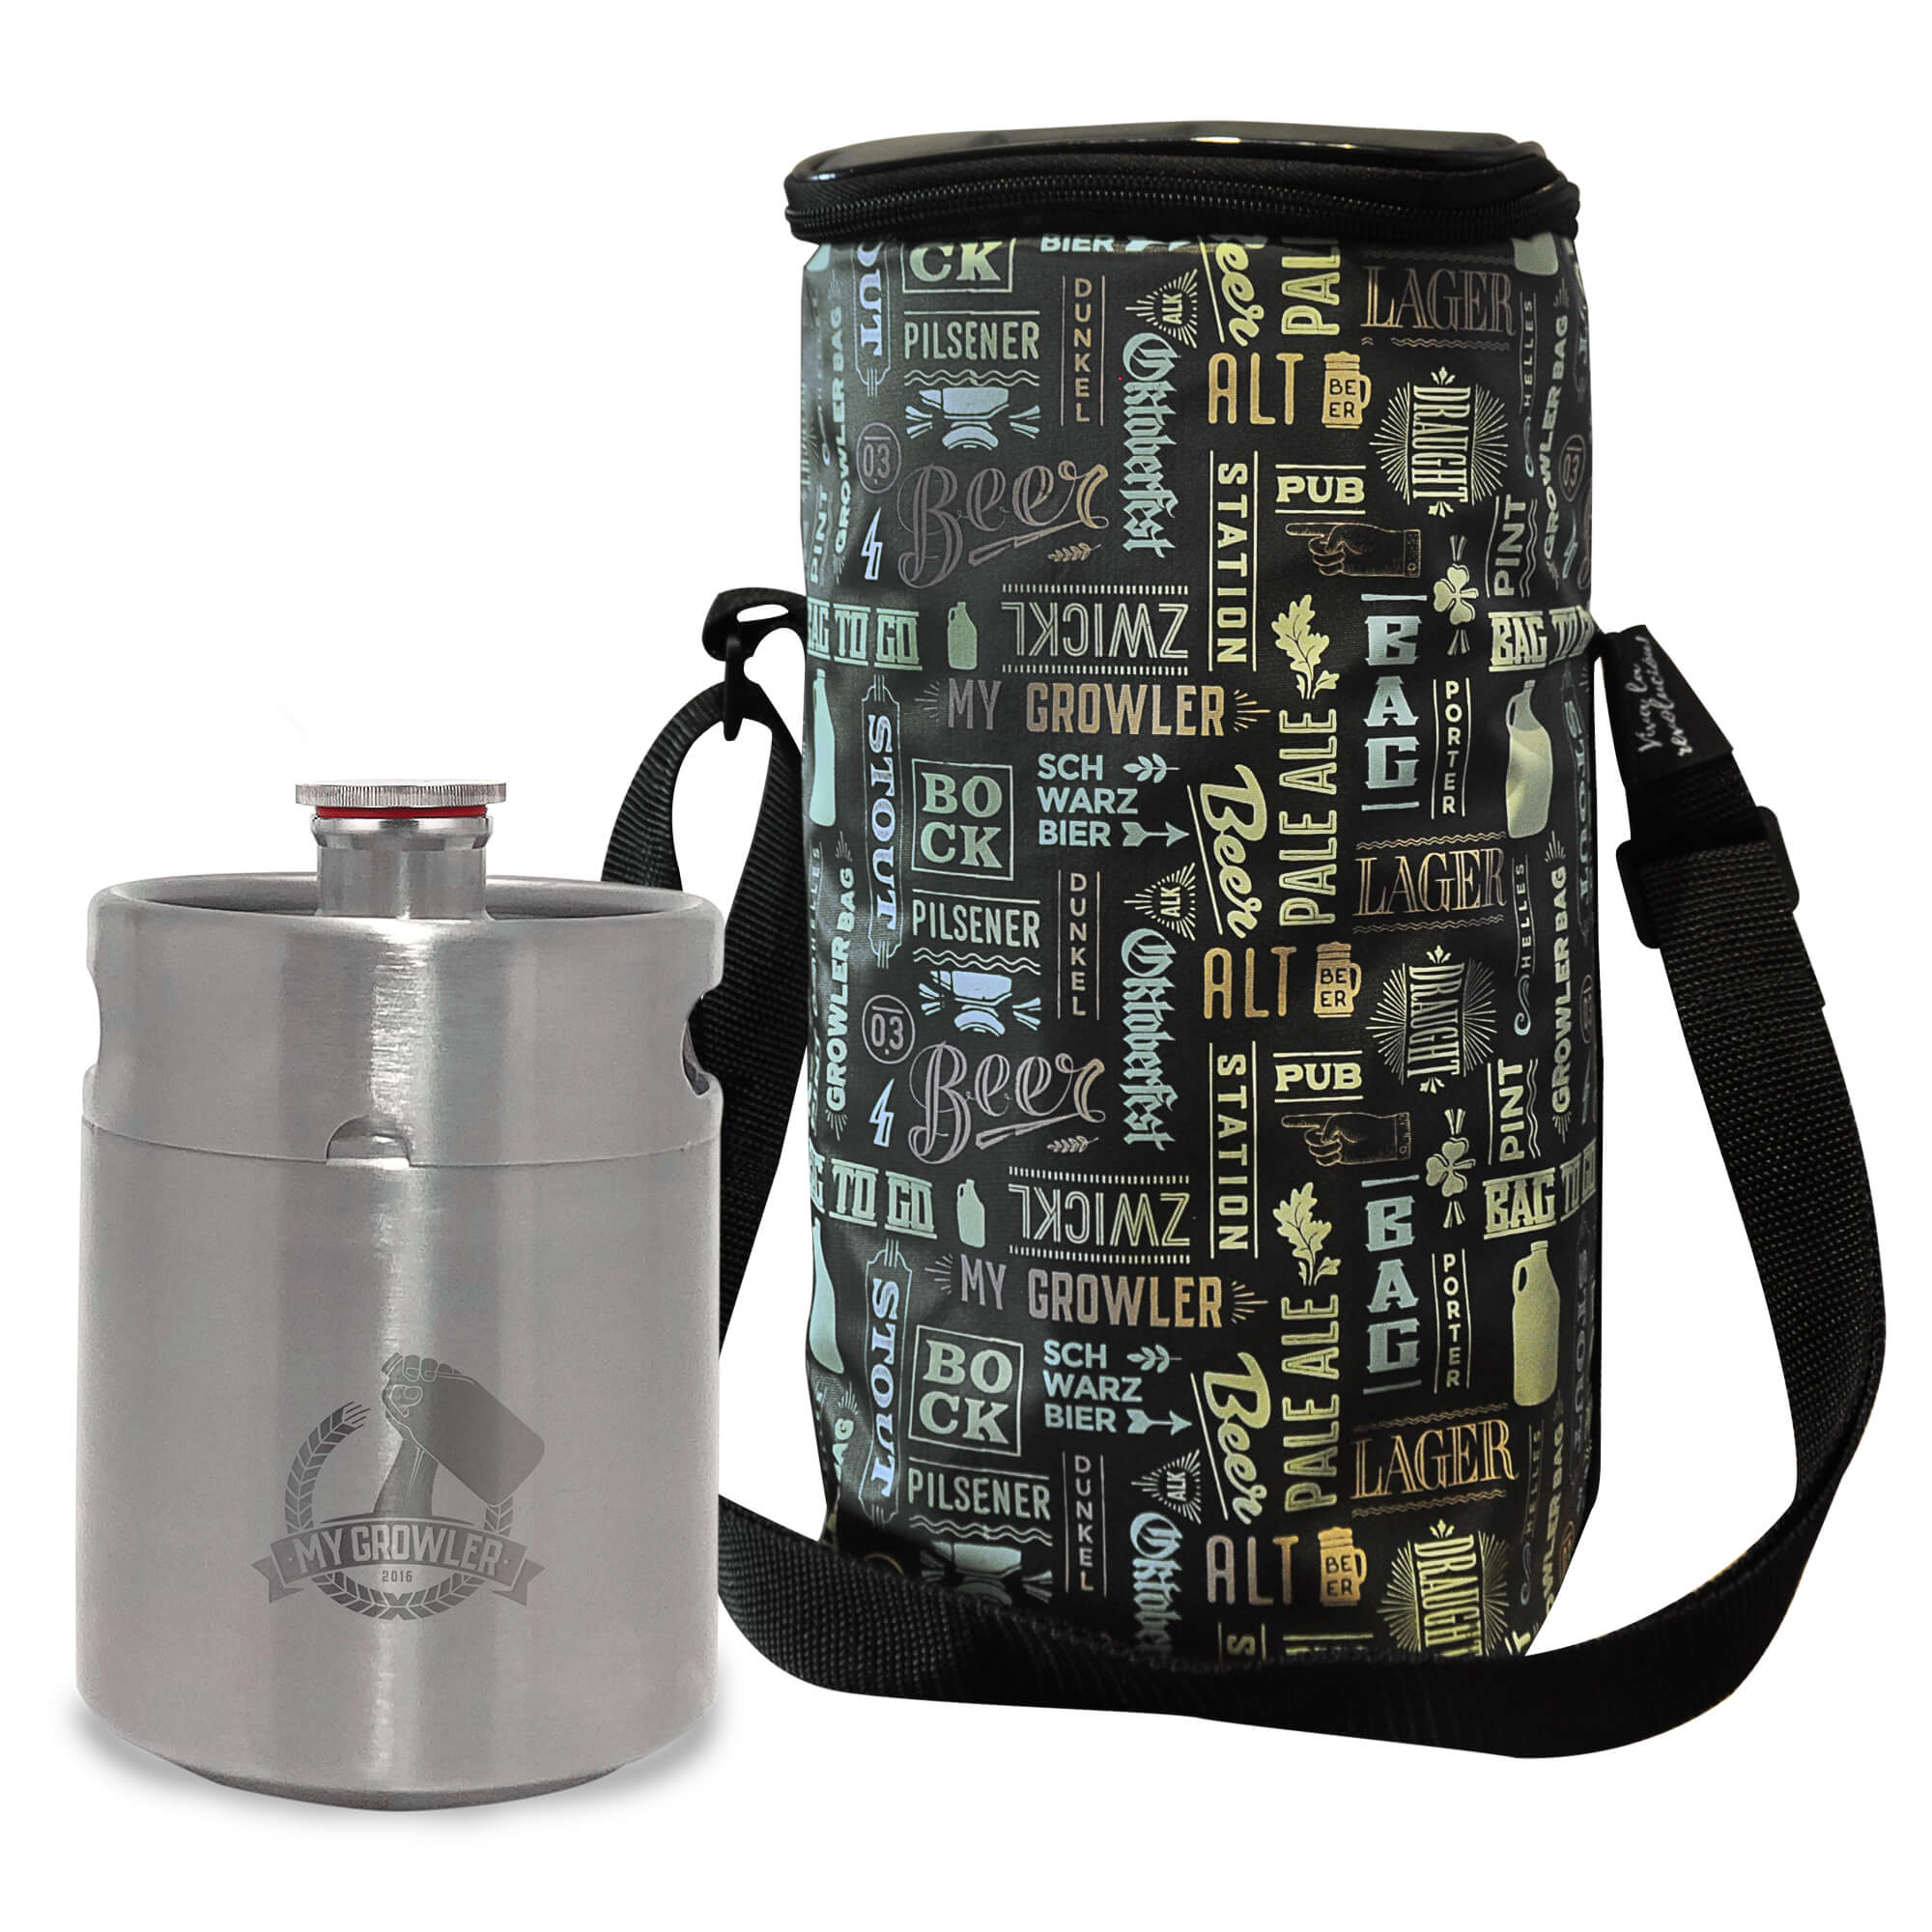 Kit My Keg #1 - Mini Keg 2L My Growler + Growler Bag To Go para 1 growler